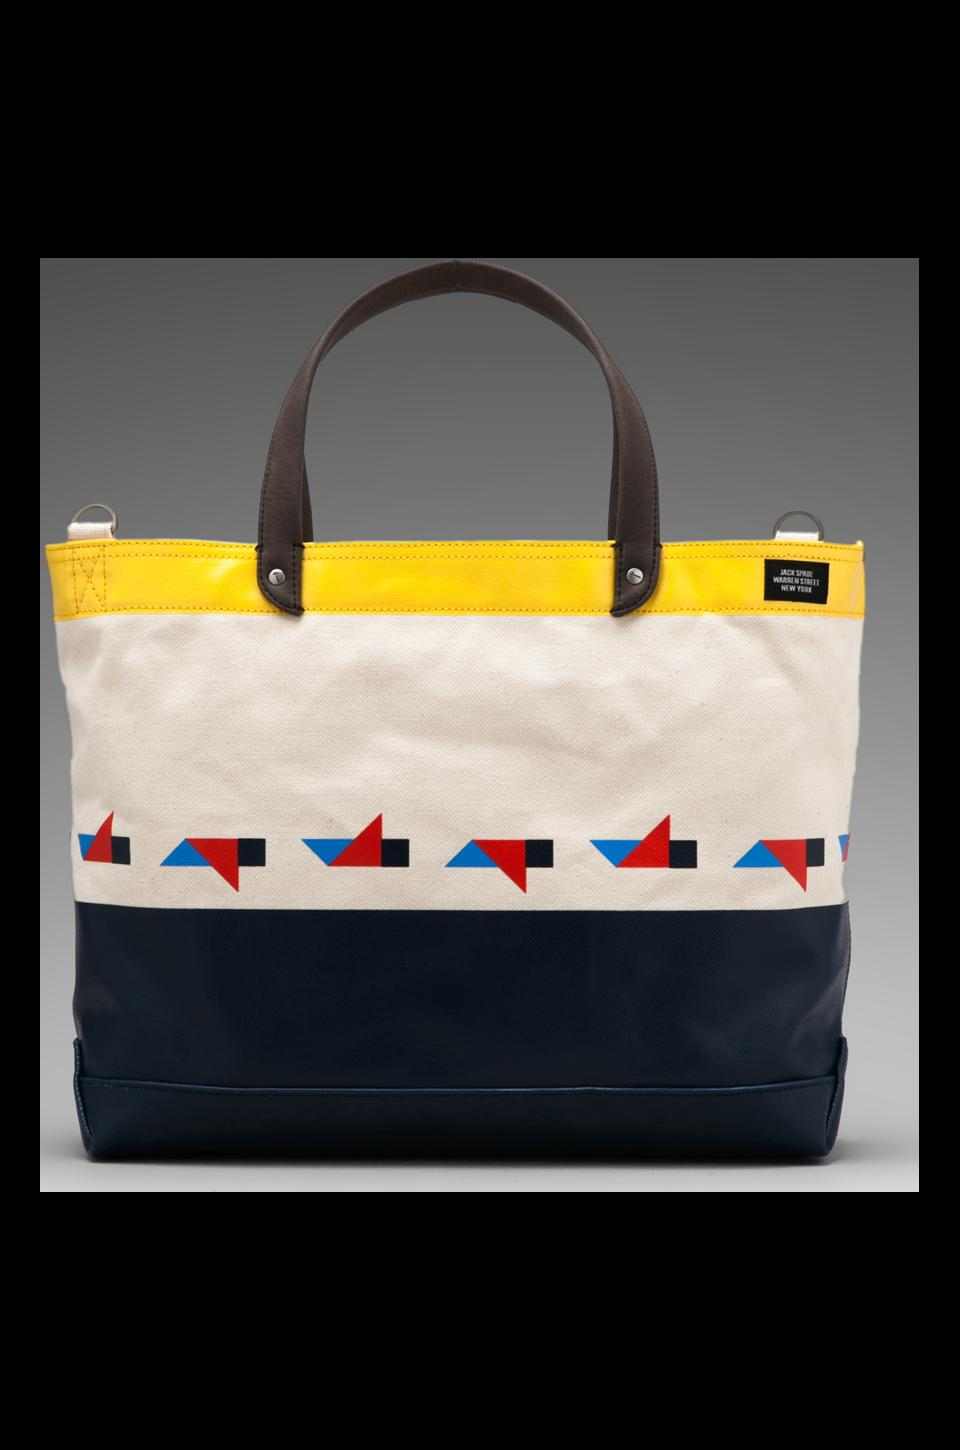 Jack Spade Tangram Coal Bag in Multi